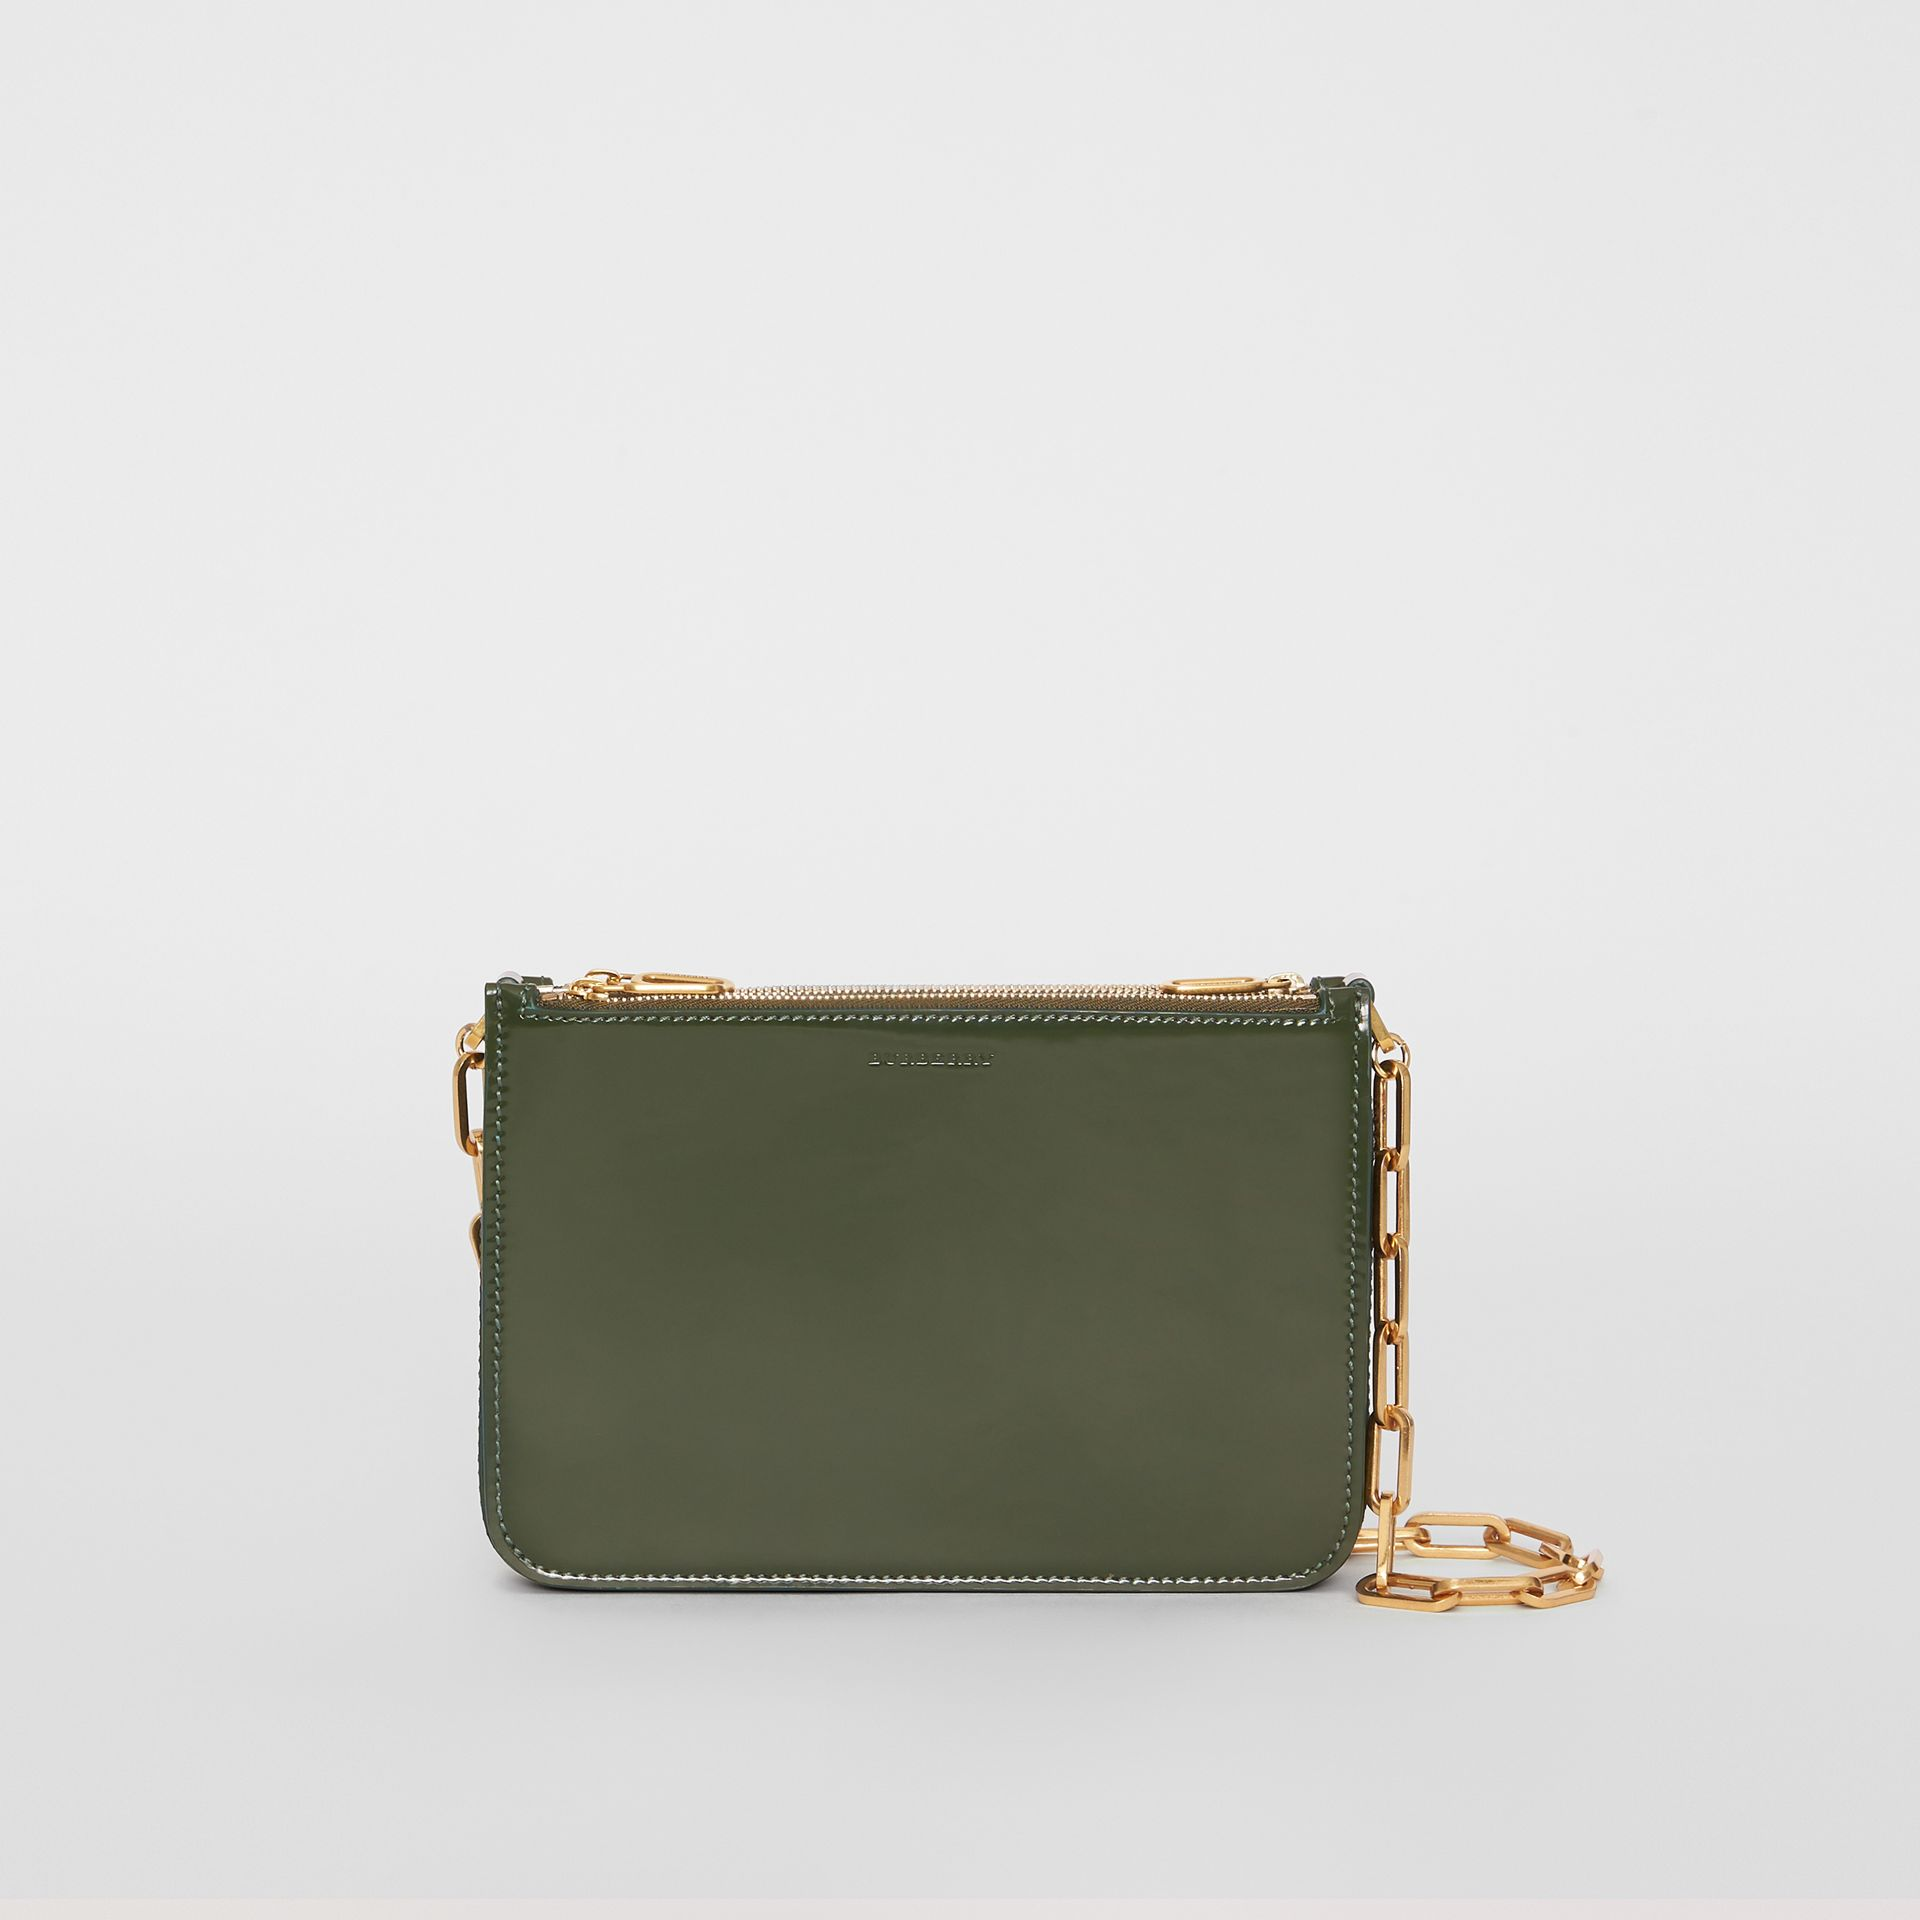 Triple Zip Patent Leather Crossbody Bag in Dark Forest Green - Women | Burberry United States - gallery image 0